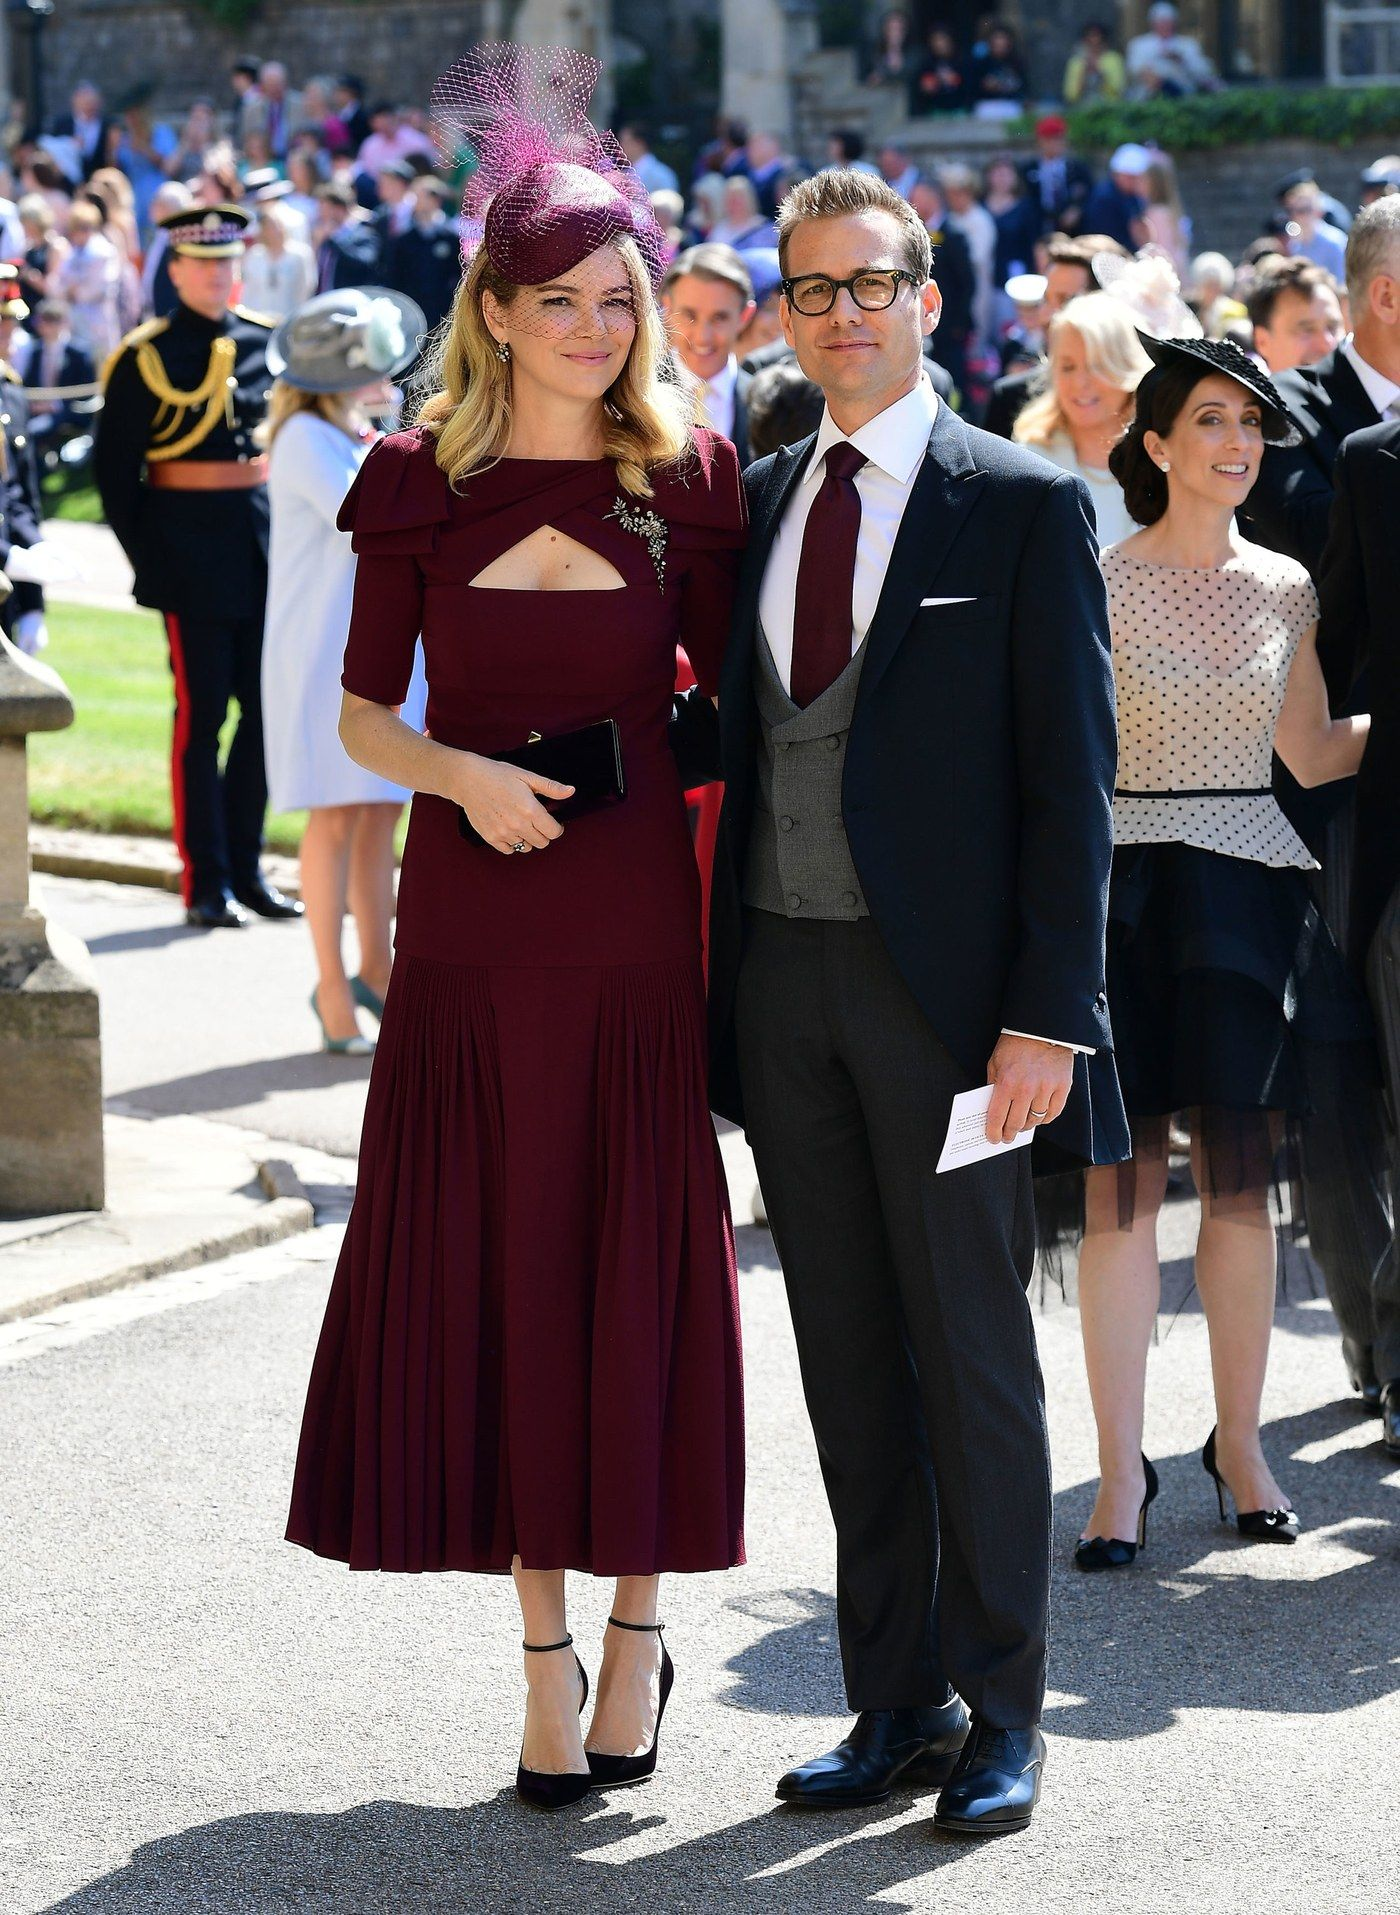 9a880dff3 Pin by Charissa Bahre on The Wedding of Harry and Meghan | Royal wedding  guests outfits, Harry wedding, Prince harry wedding